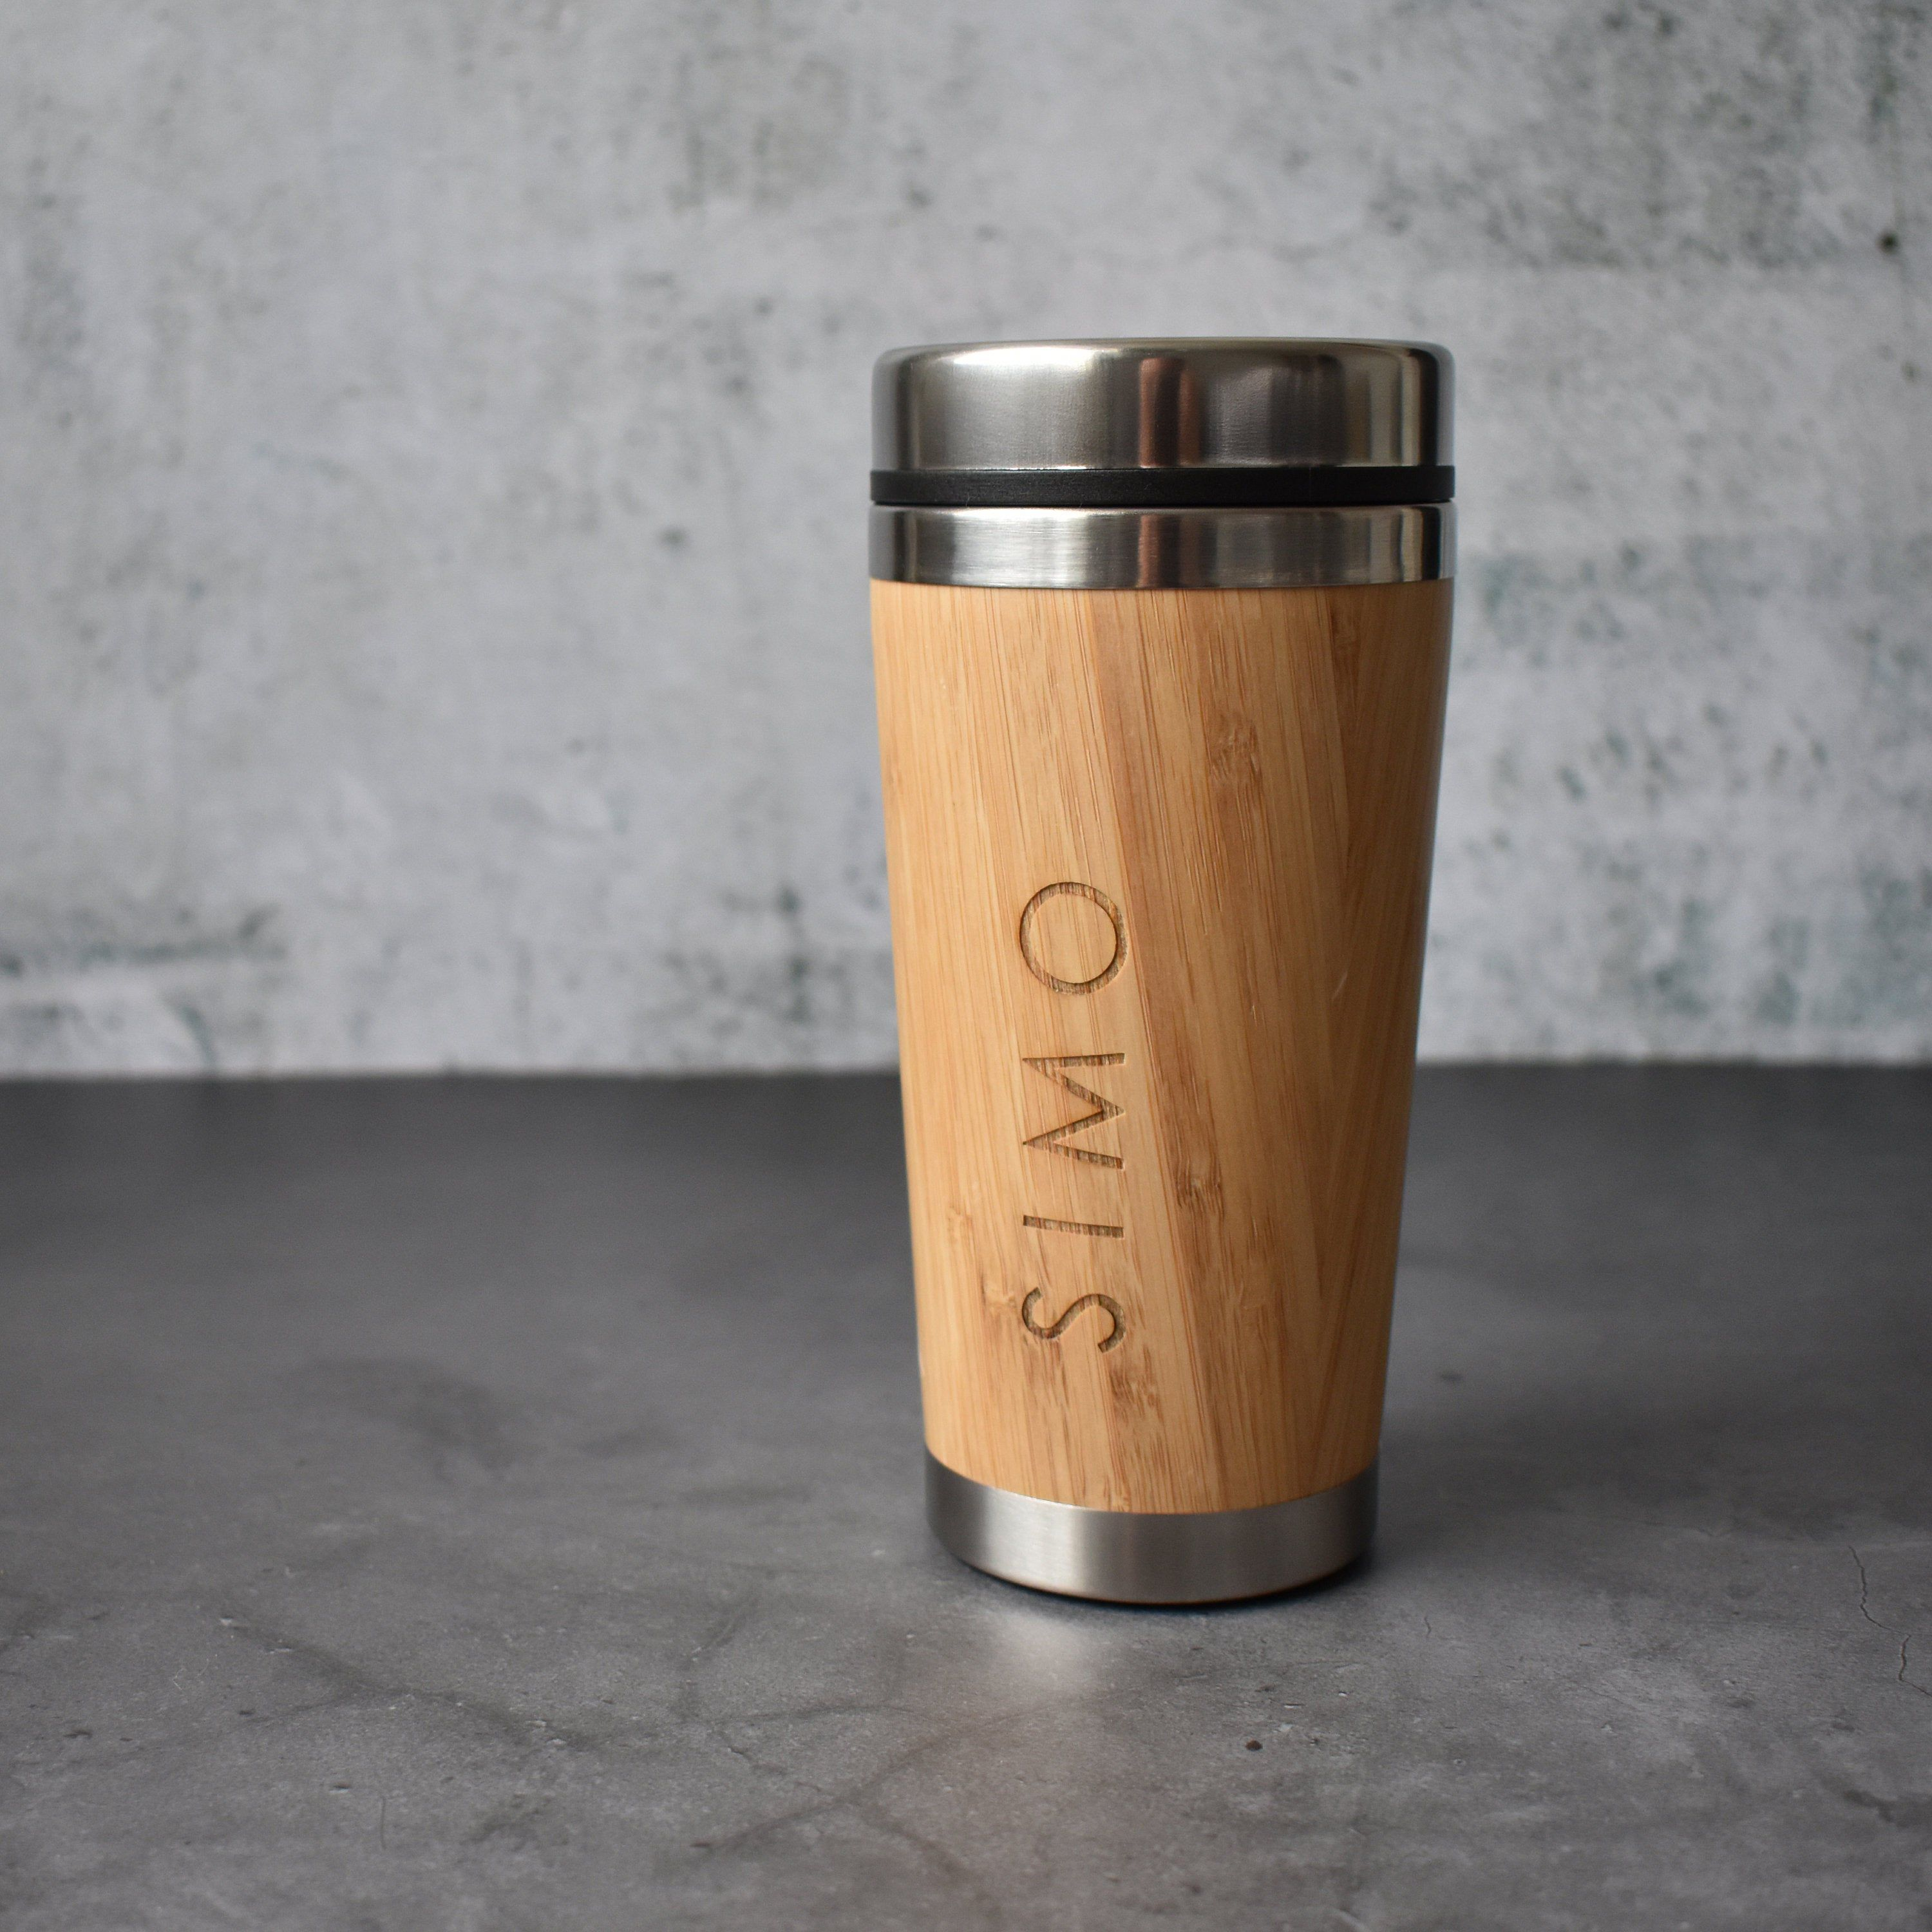 Personalised Travel Mug Bamboo Mug Wood Tumbler 450ml | Etsy